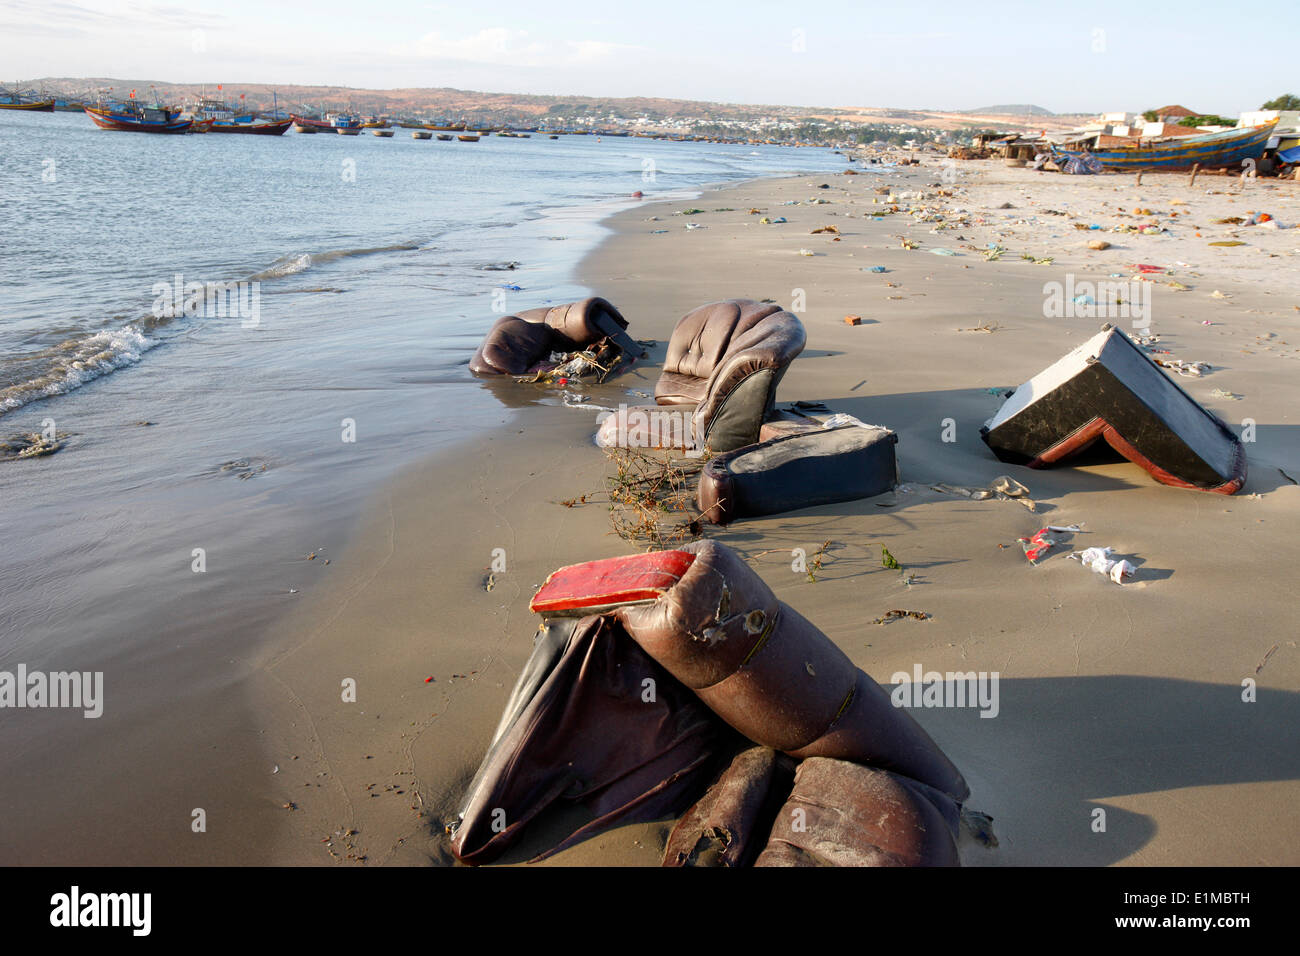 Polluted beach in Mui Ne. - Stock Image